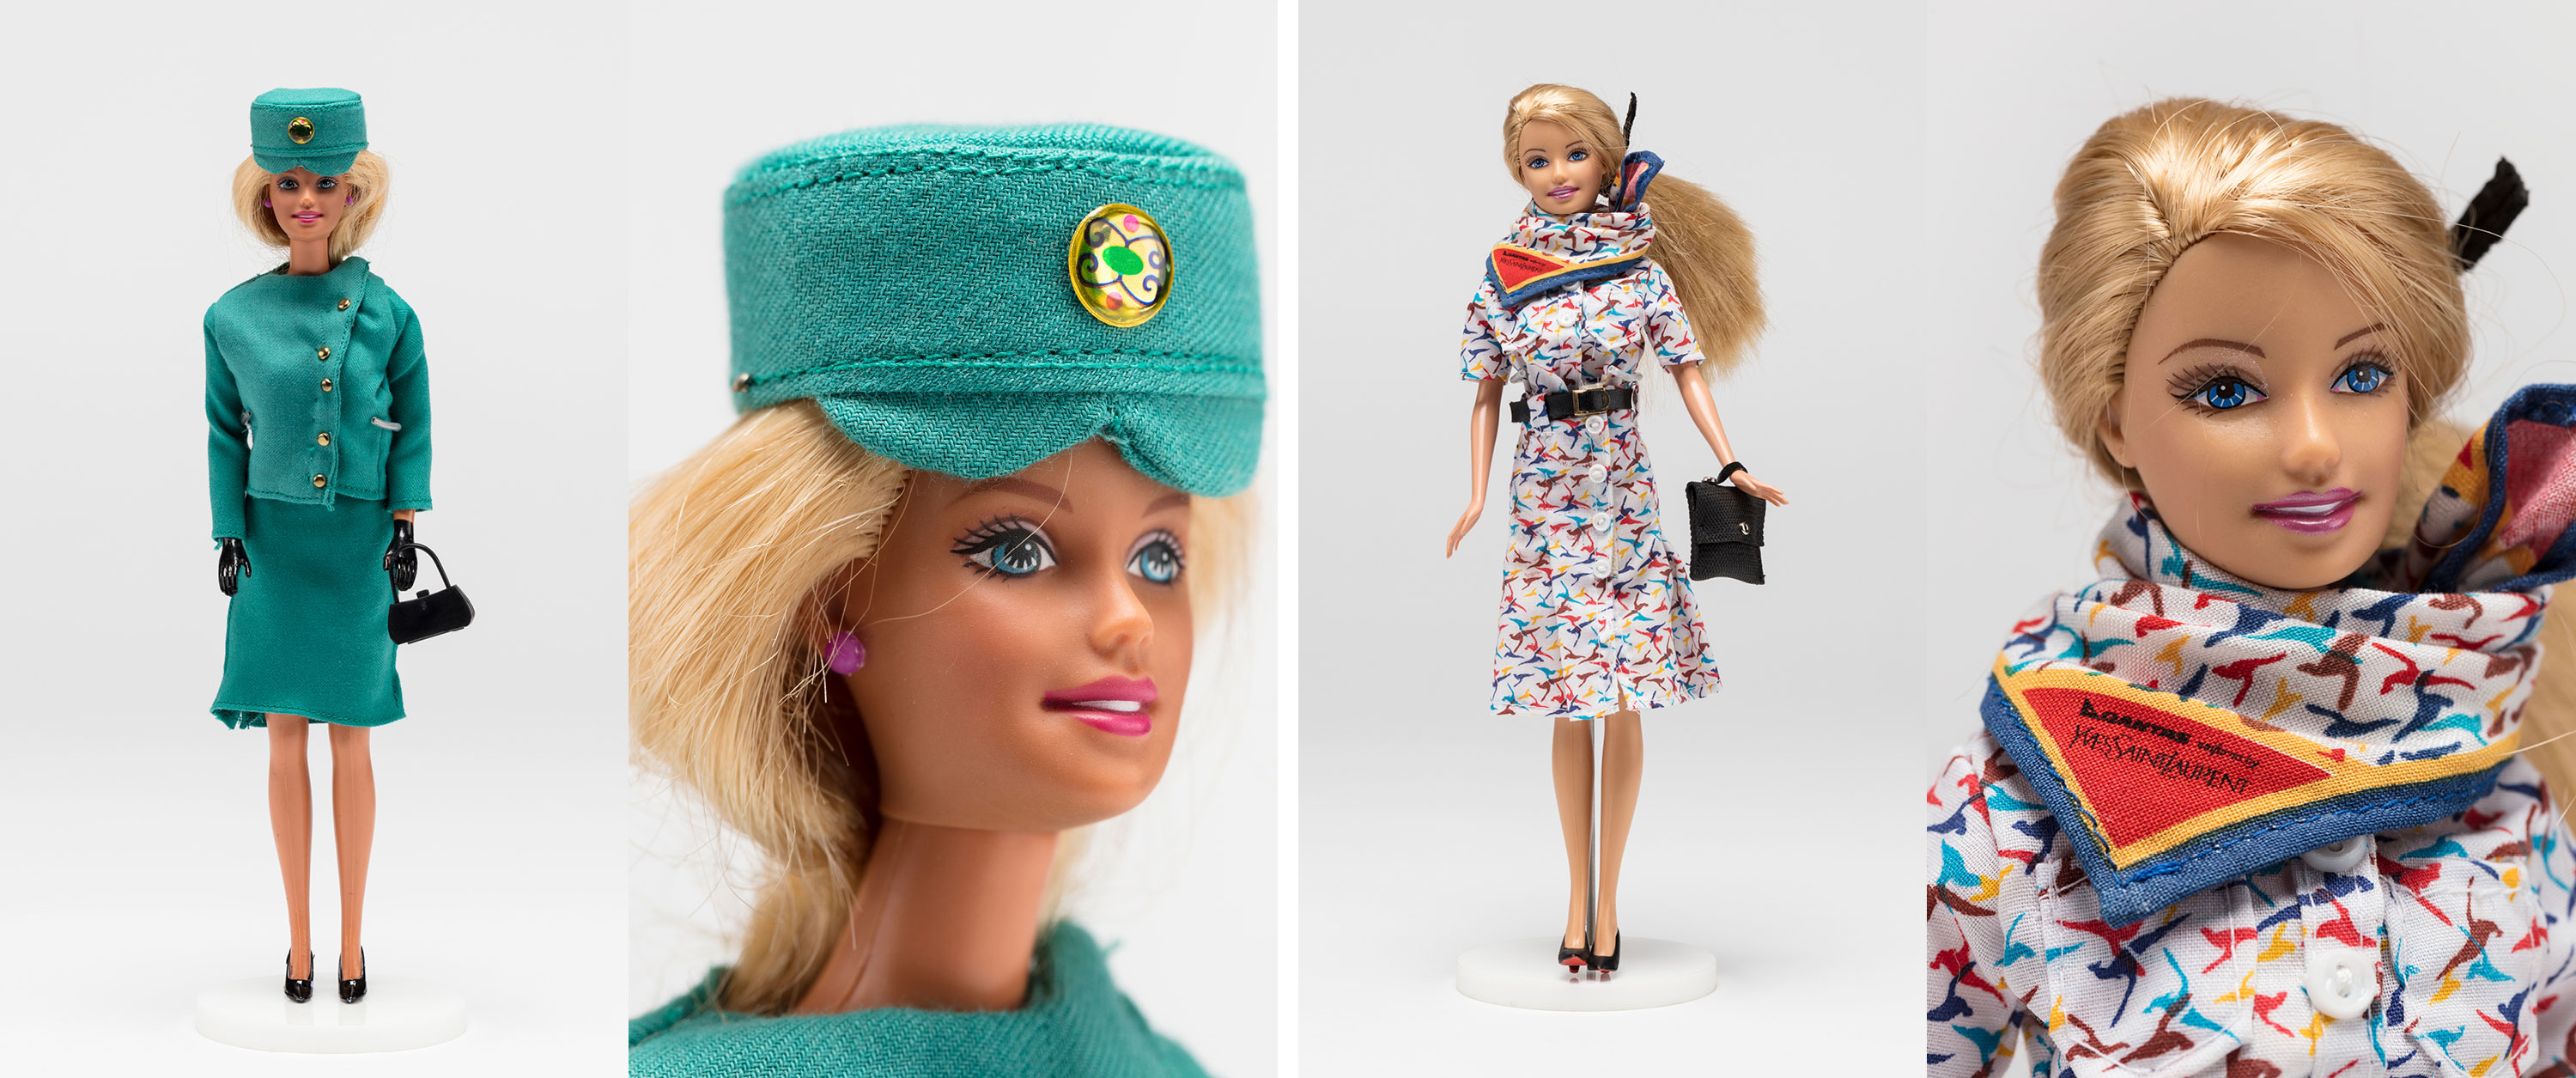 Barbie dolls wearing outfits inspired by1971–2010QANTAS uniforms.